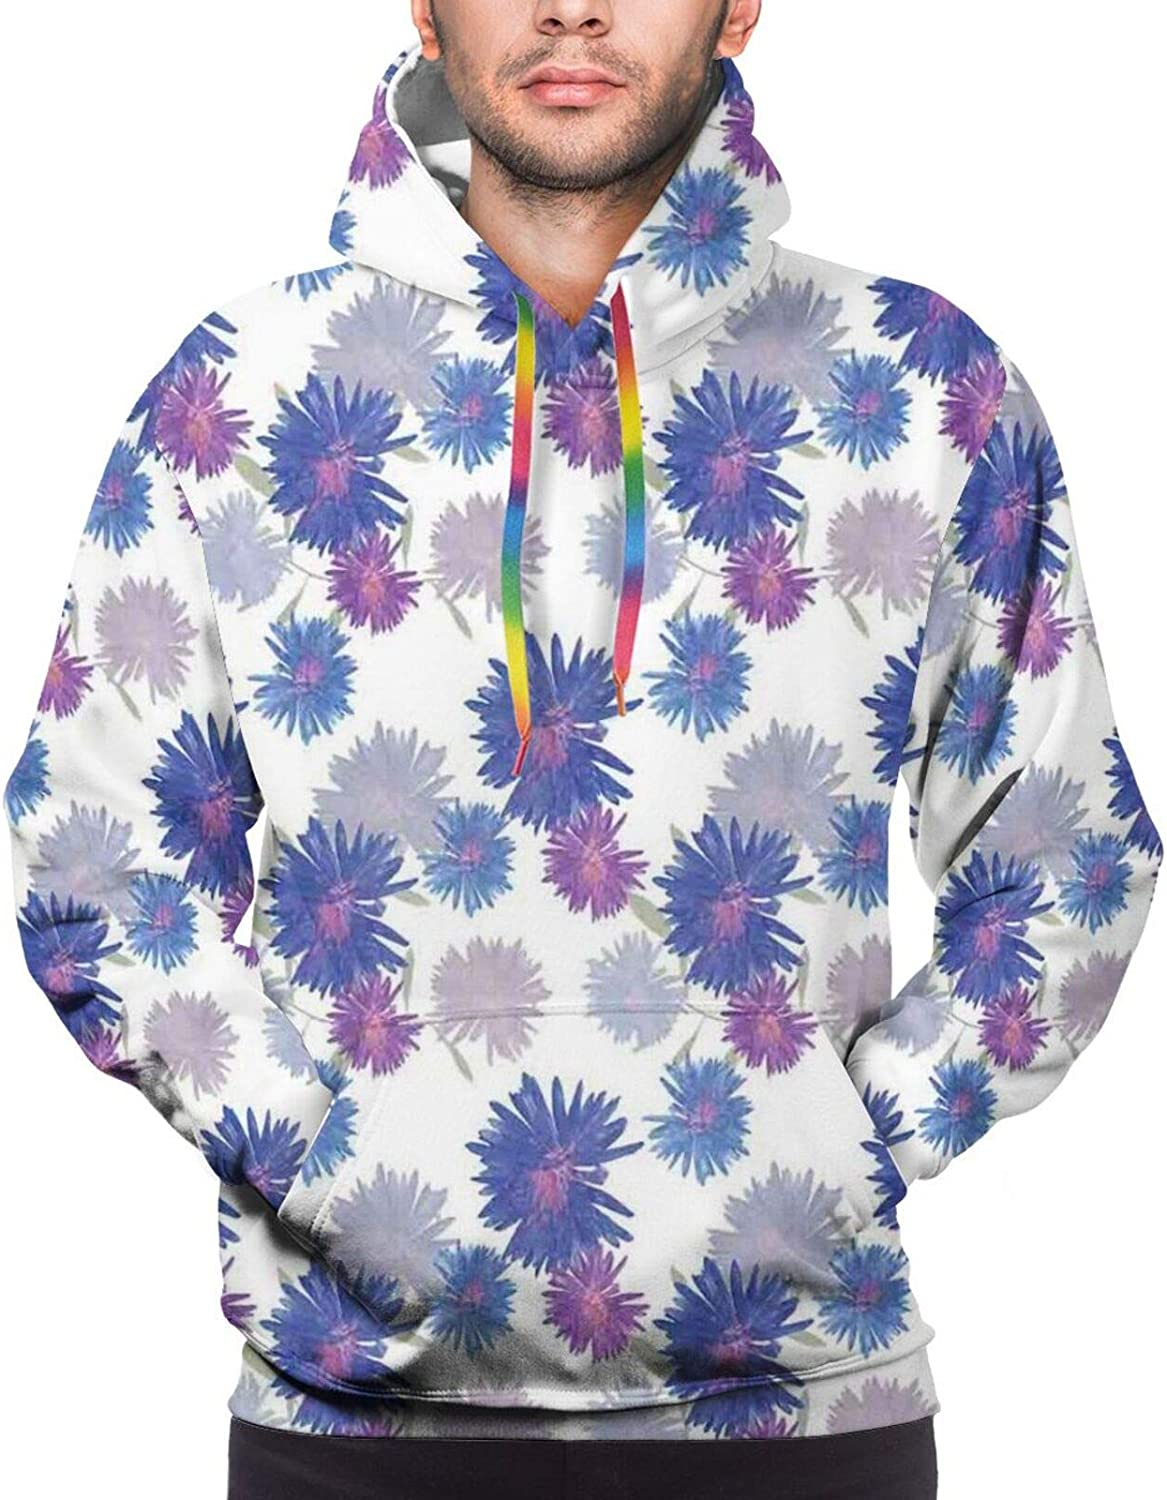 Men's Hoodies Sweatshirts,Miami Forest Palm Tree Leaves in Pastel Colors Watercolor Foliage Ecology